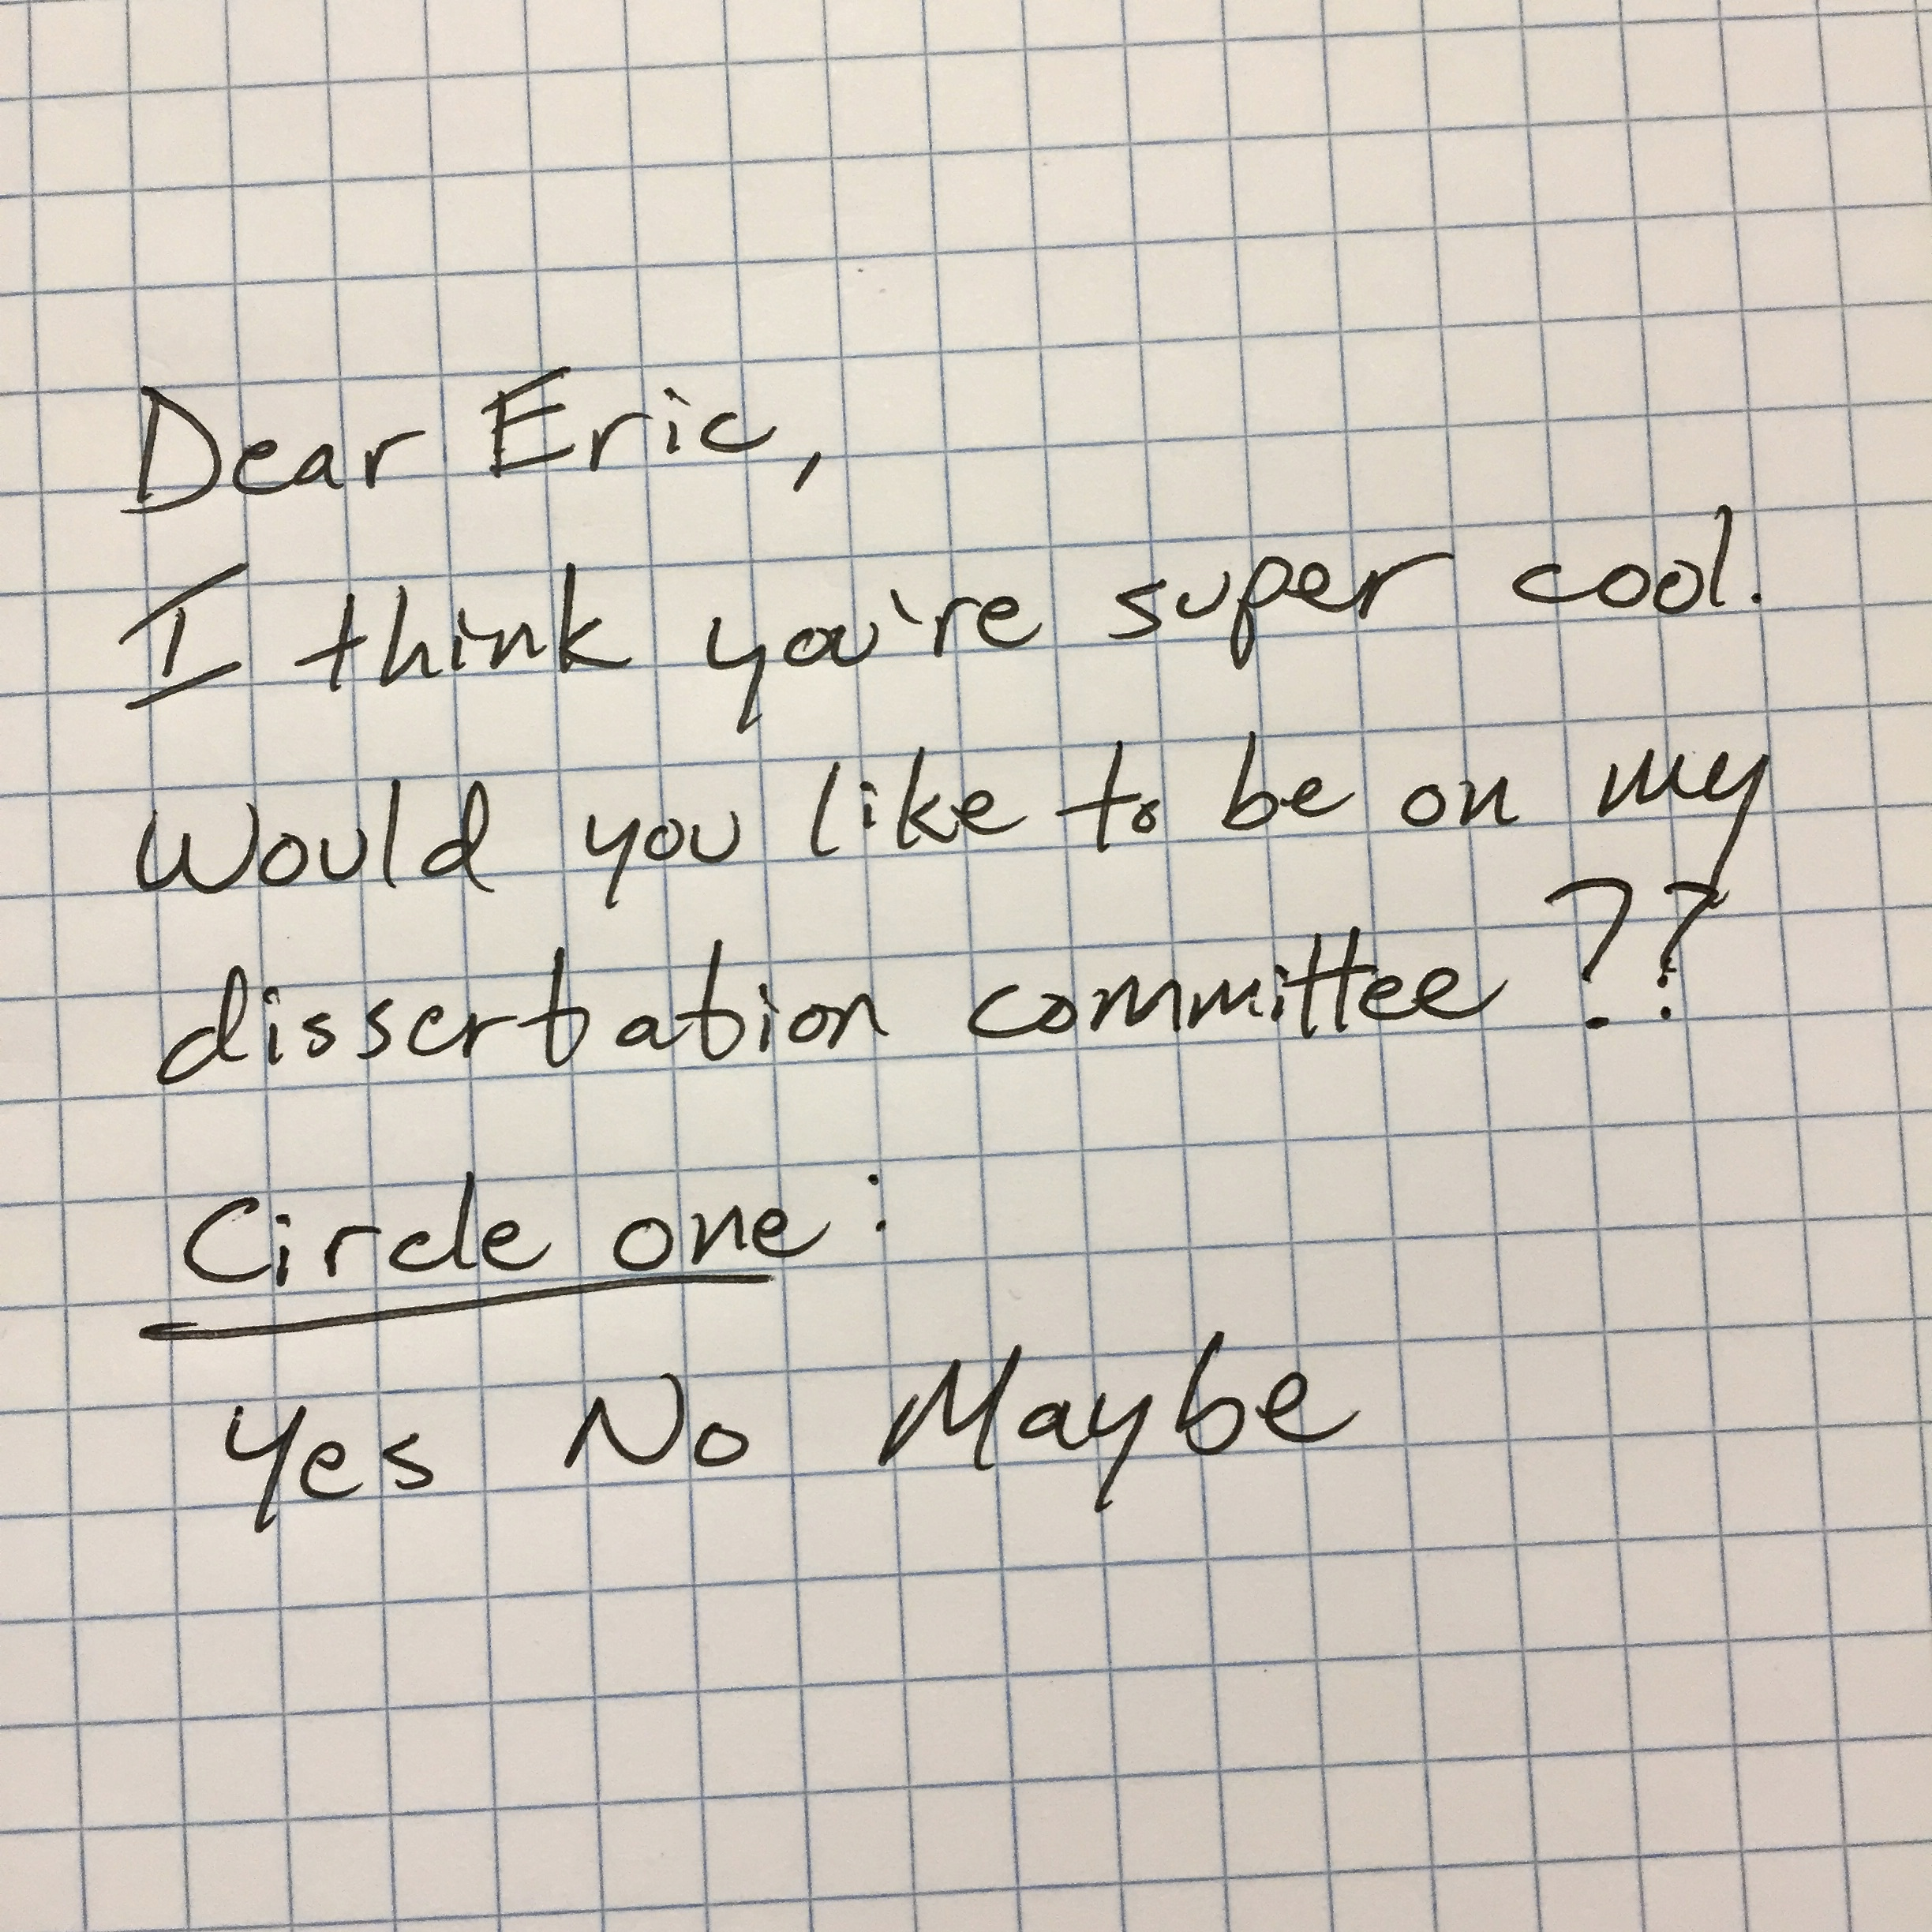 Upon repeated failures to garner a response, I emailed this to a potential dissertation committee member. I heard back in minutes. He said yes.